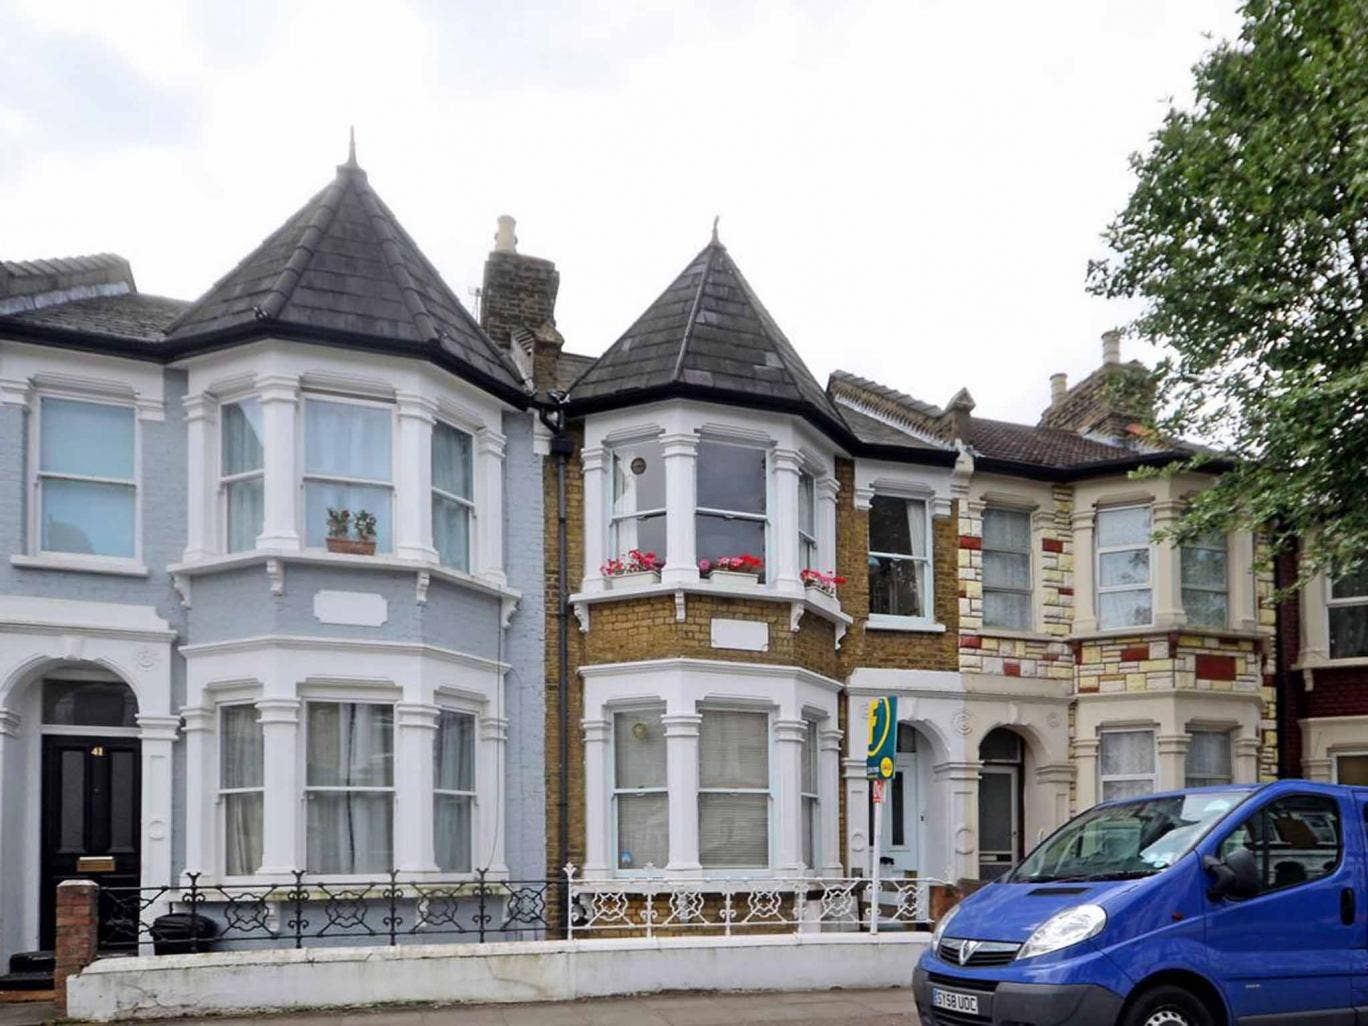 Two bedroom maisonette for sale in Prince George Road, Stoke Newington N16. On with Foxtons at £625,000.